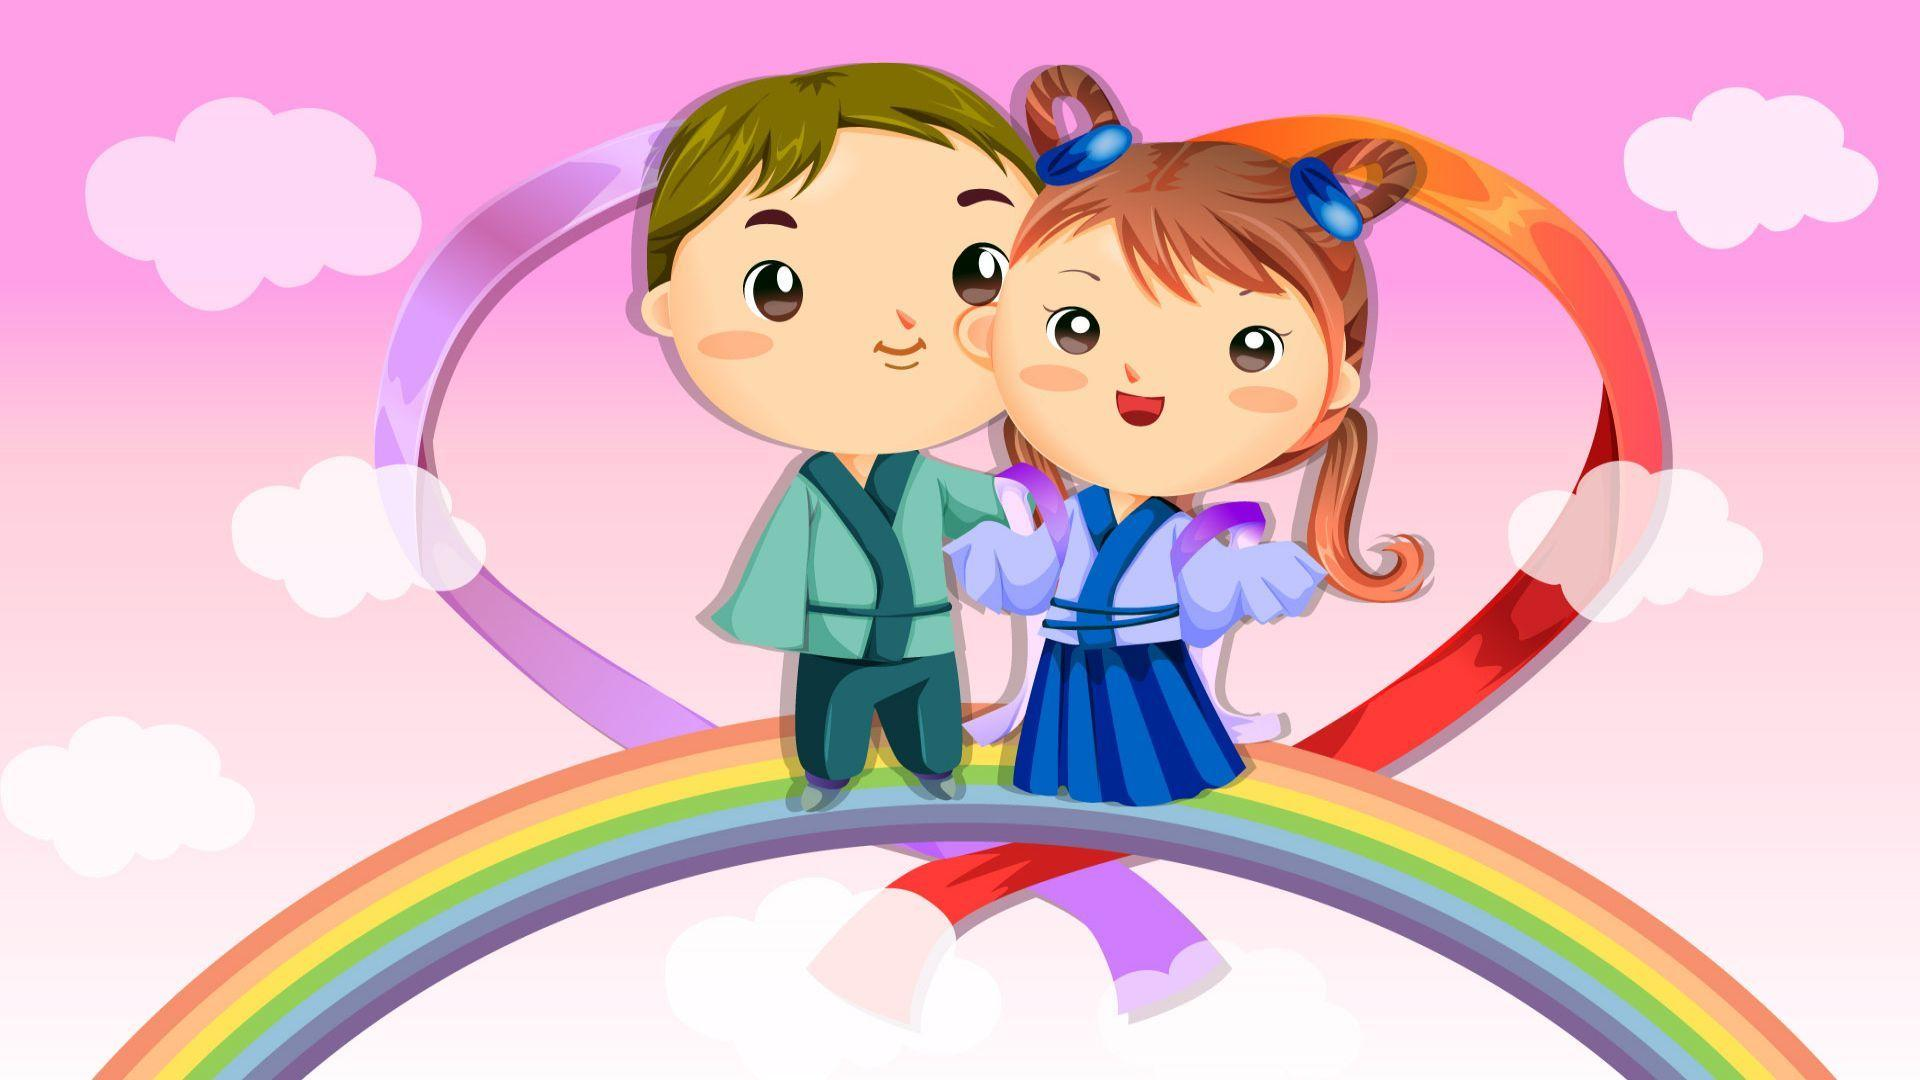 Wallpaper Fall In Love cartoon : Love cartoon Wallpapers - Wallpaper cave